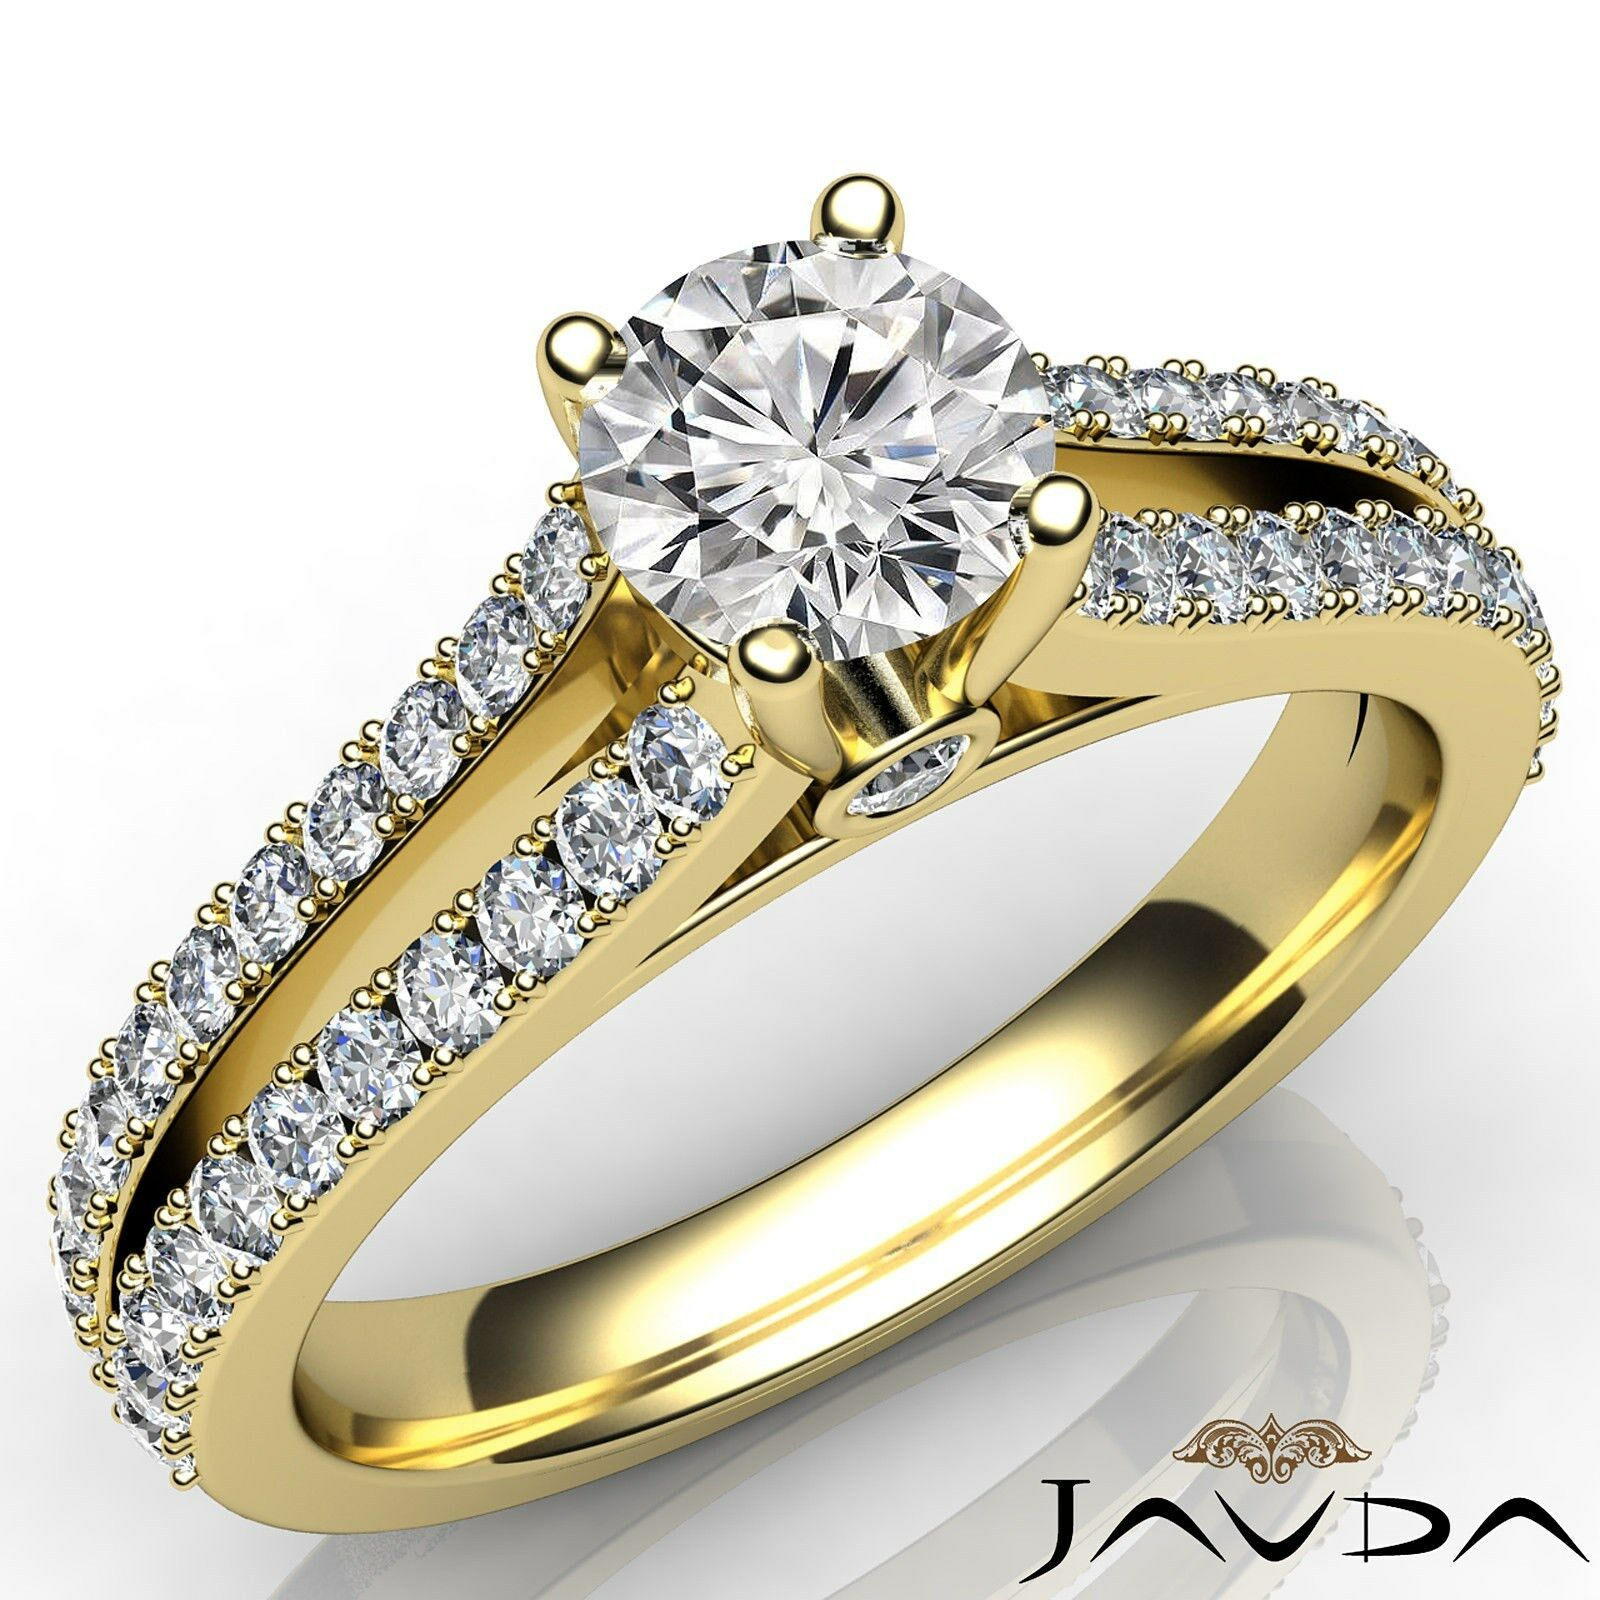 100% Natural Round Diamond Engagement Split Shank Ring GIA E Color SI1 1.15Ct